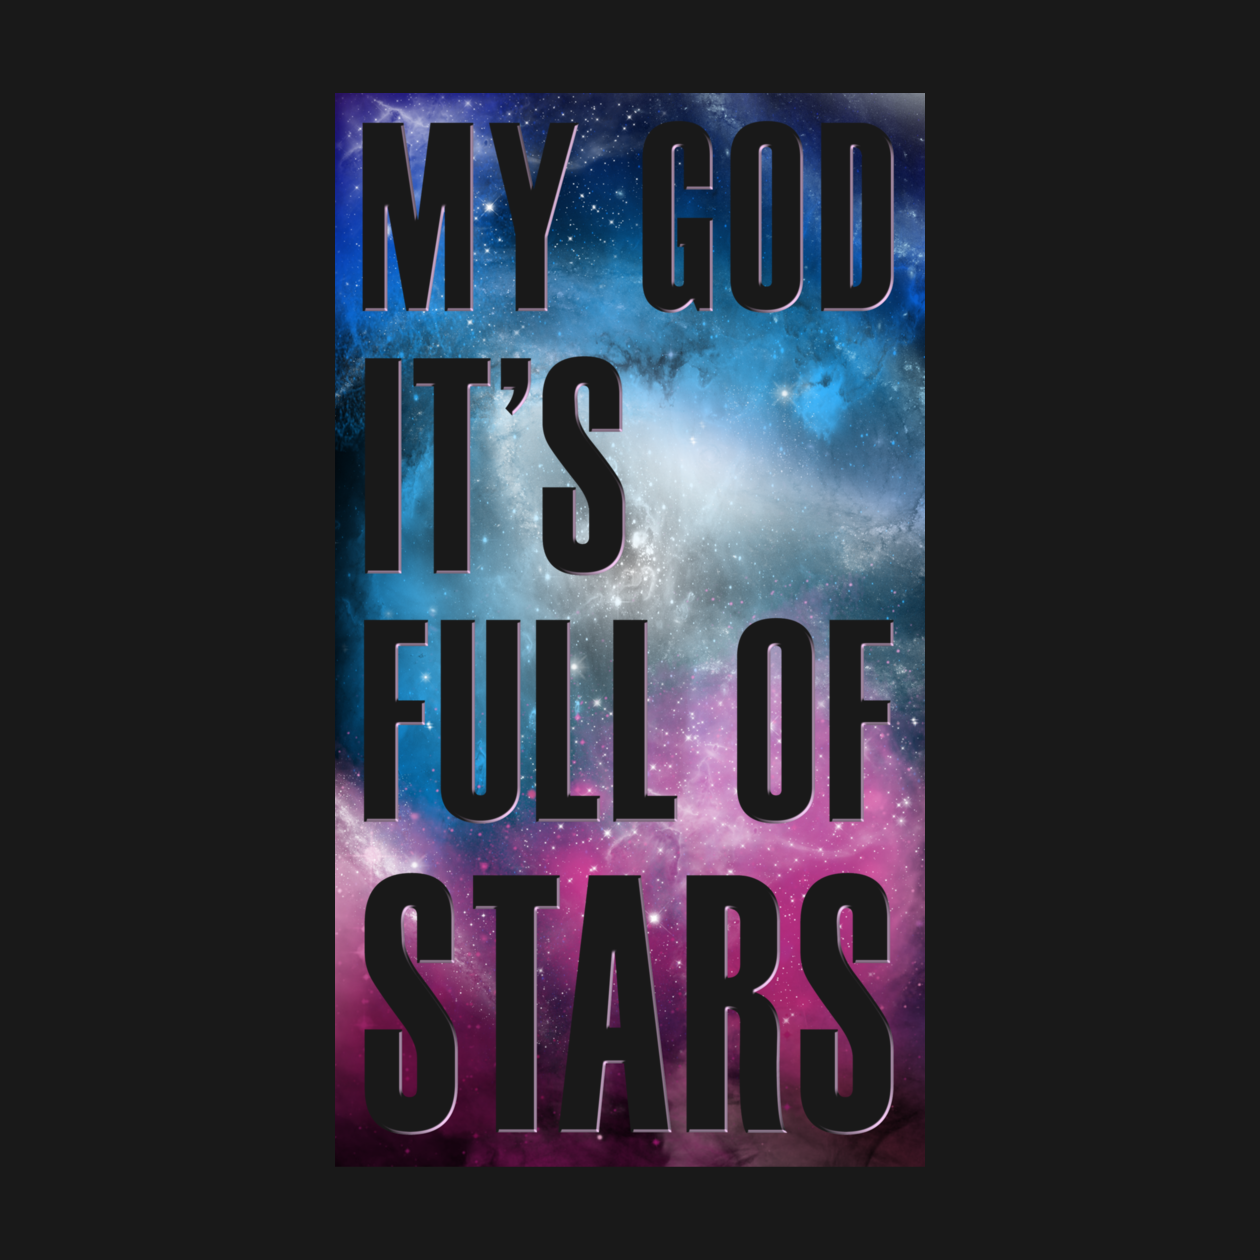 Inspired by the famous quote from 2001 a space odyssey 2001 stanley kubrick full of stars space space scene stellar star quote movie quotes